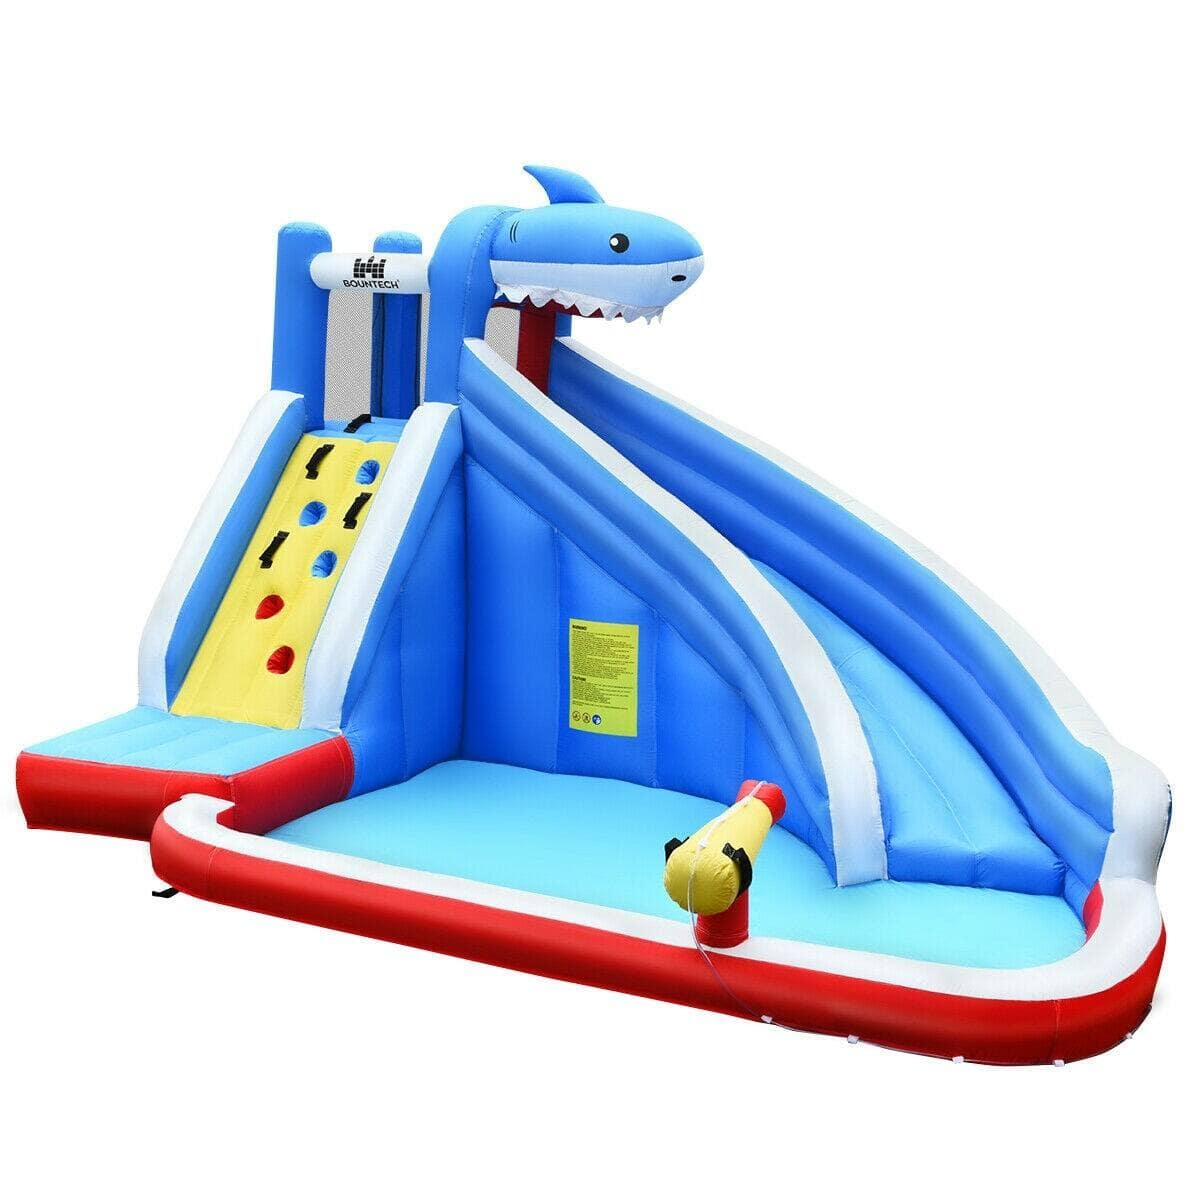 Costway Inflatable Water Slide Shark Bounce House Castle without Blower for $219.95 + FS